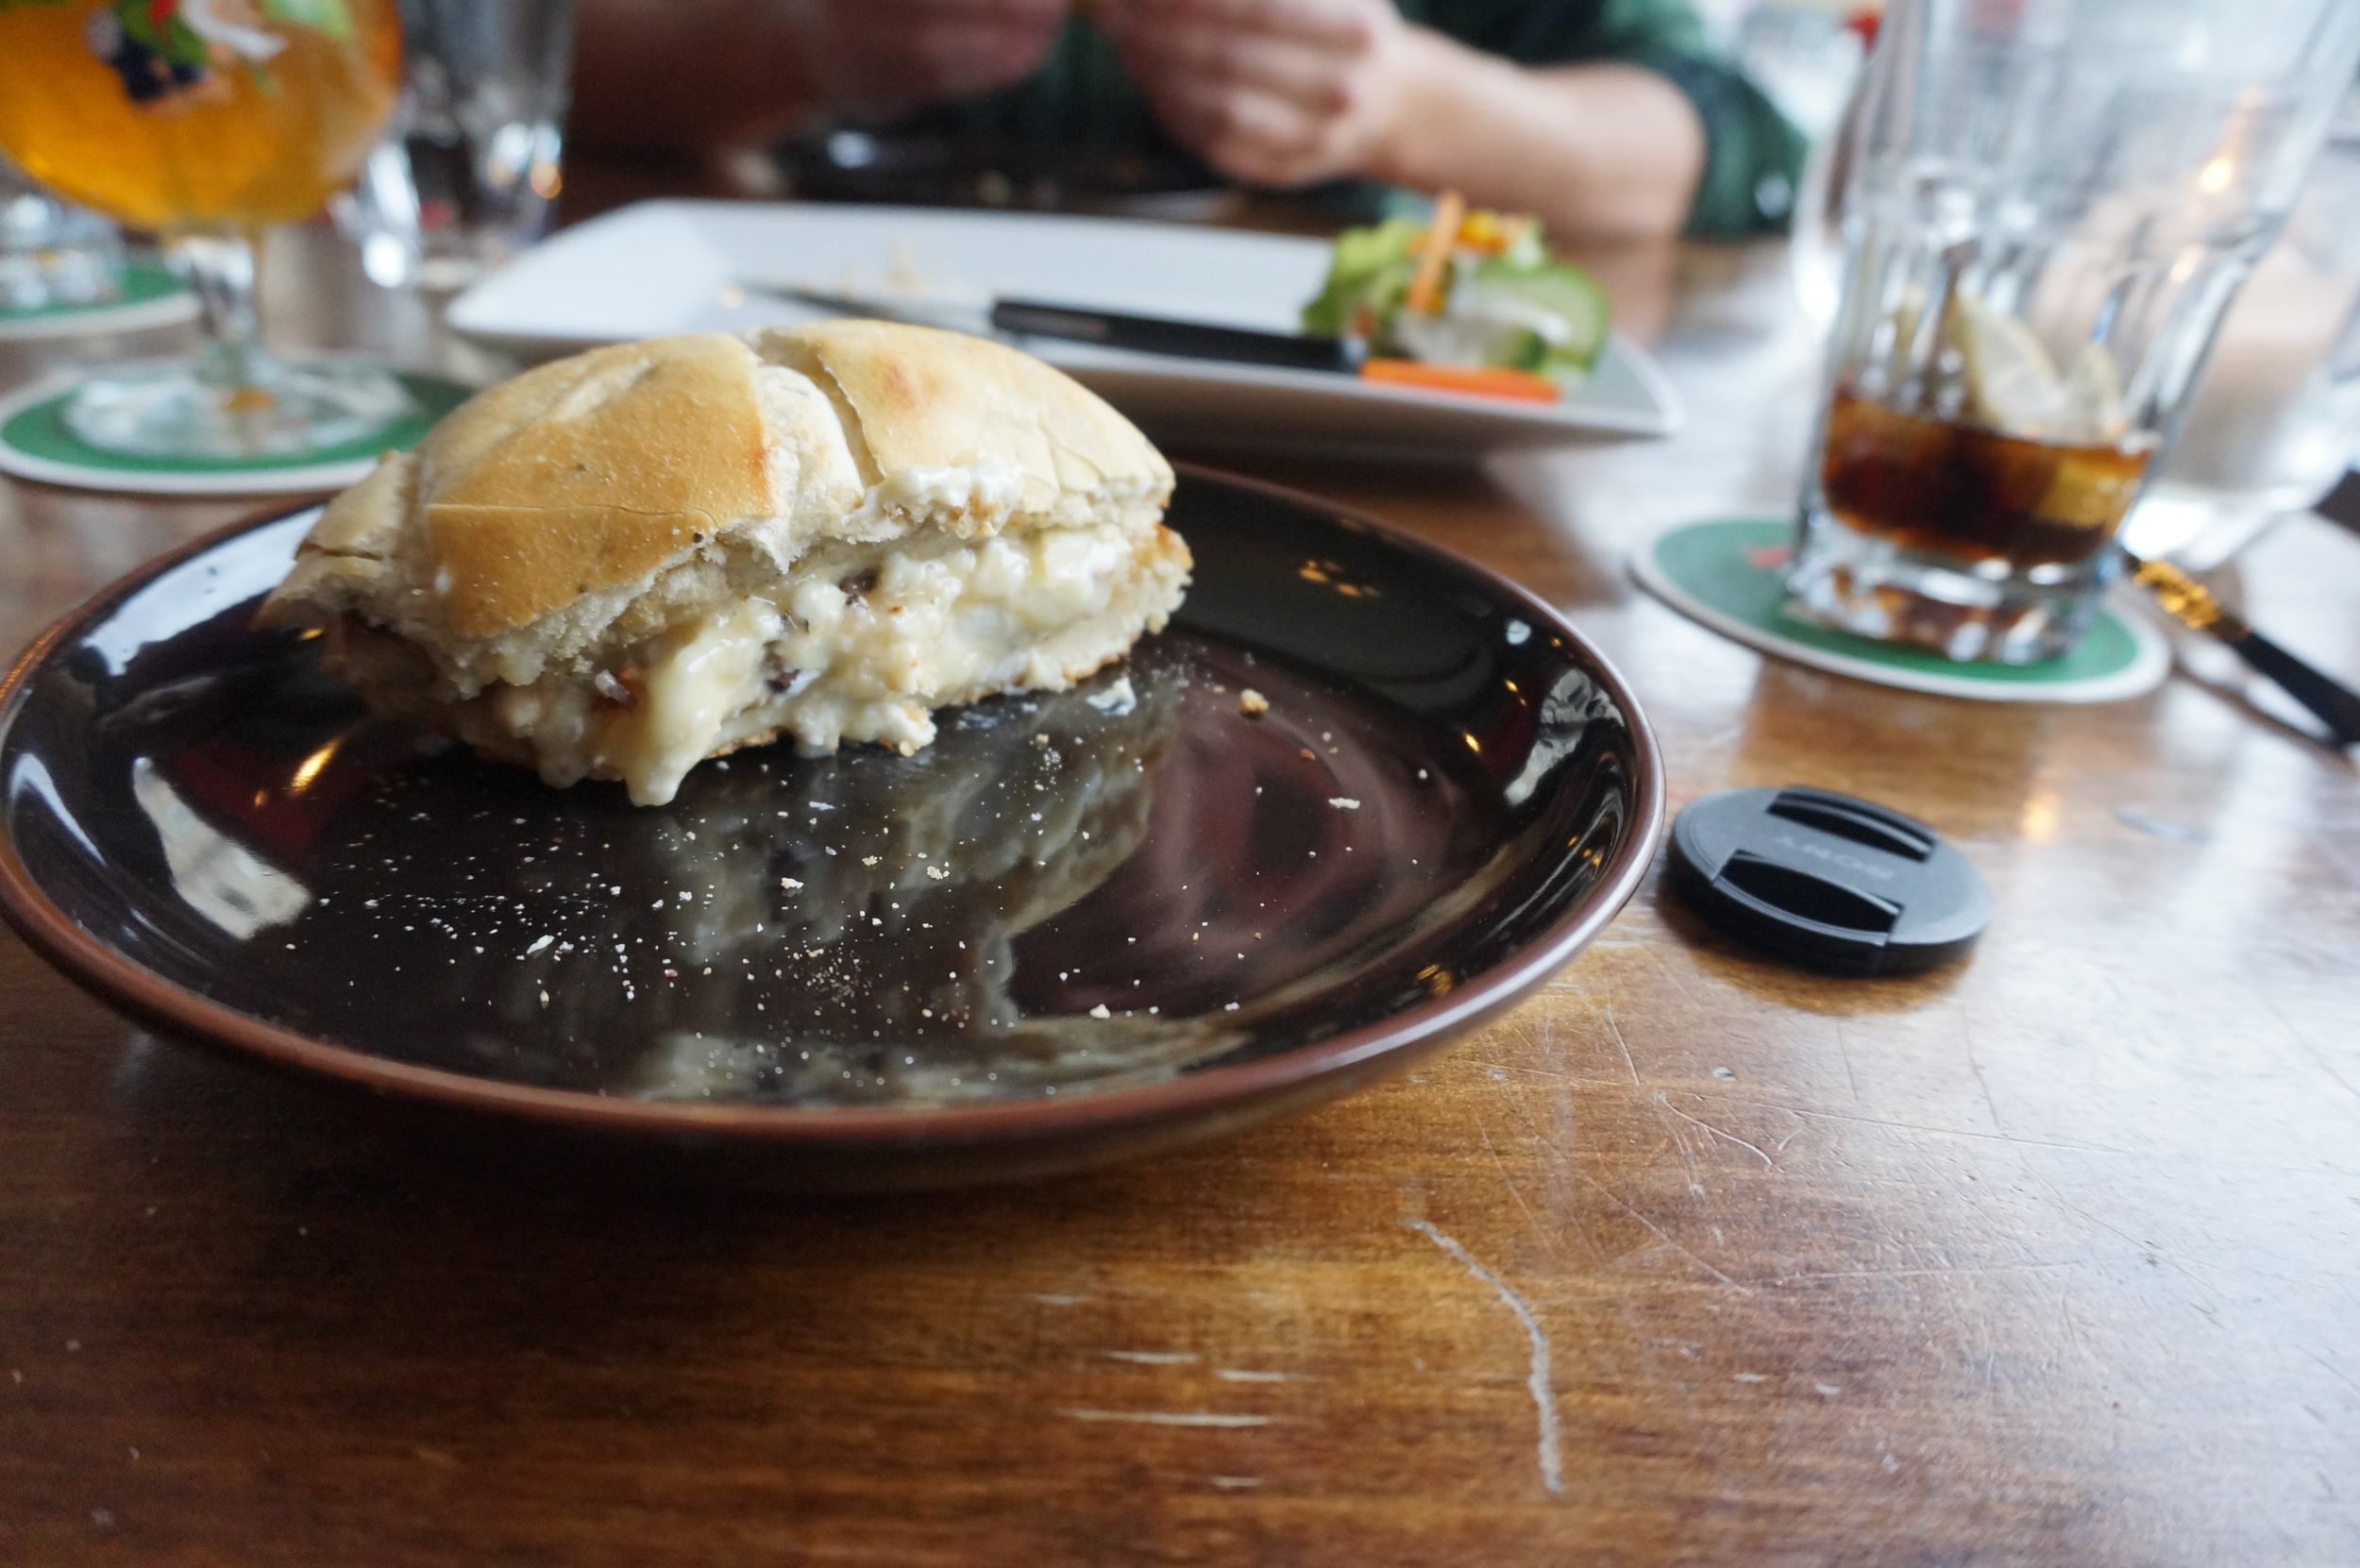 Yum! This was such an amazing sandwich —goat cheesewith honey and walnuts!